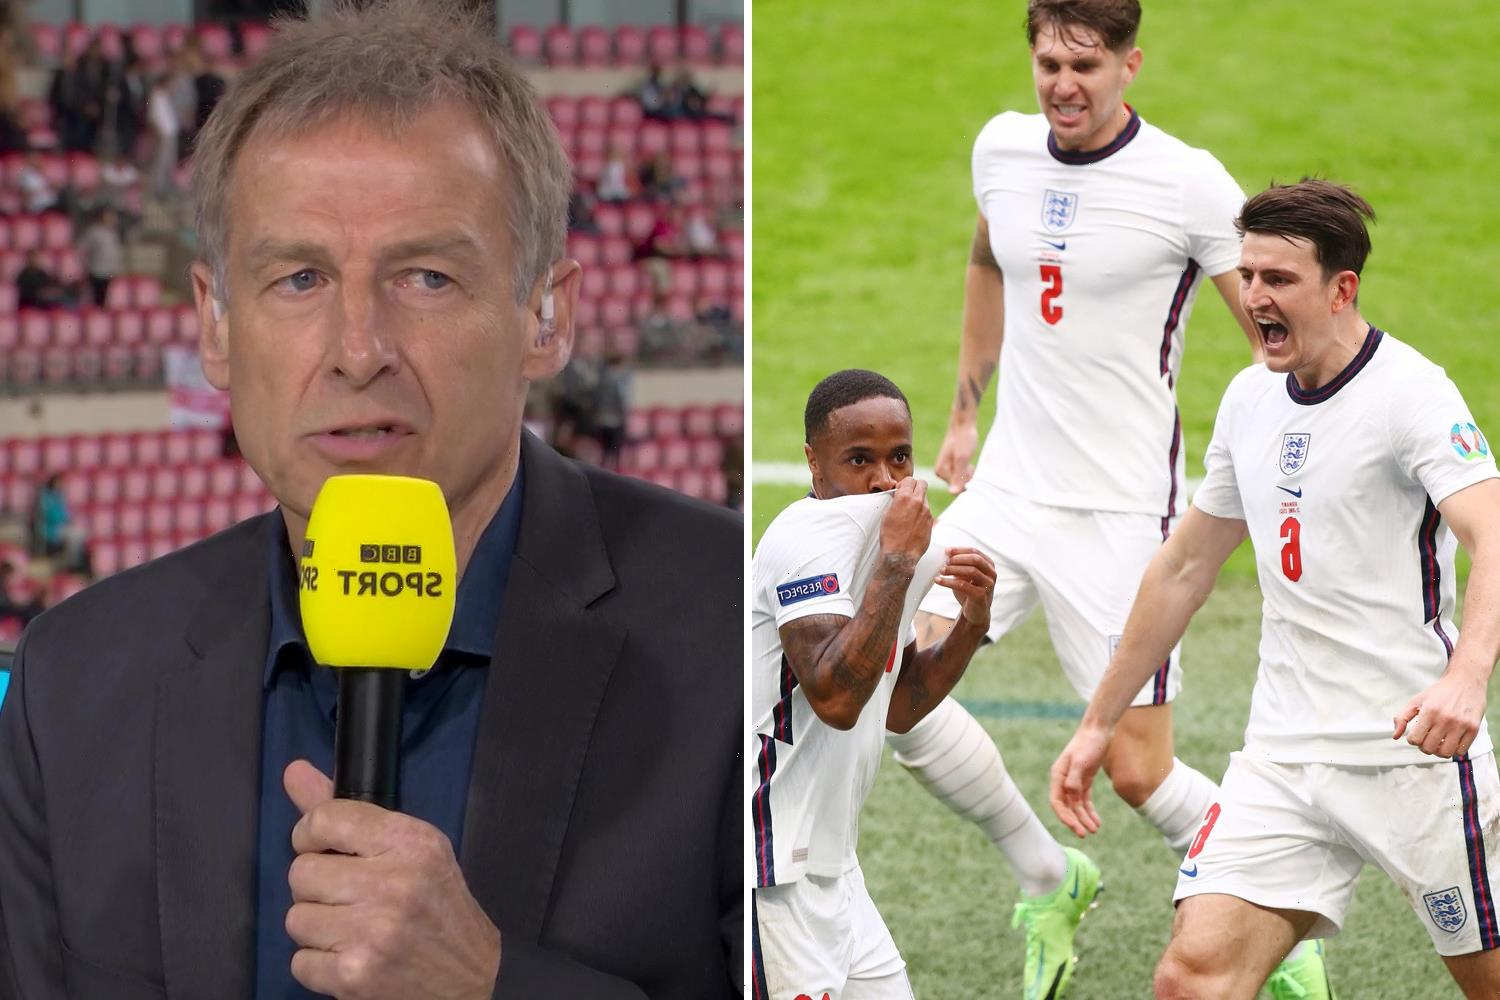 Jurgen Klinsmann congratulates England and admits Three Lions deserved to beat Germany in classy message